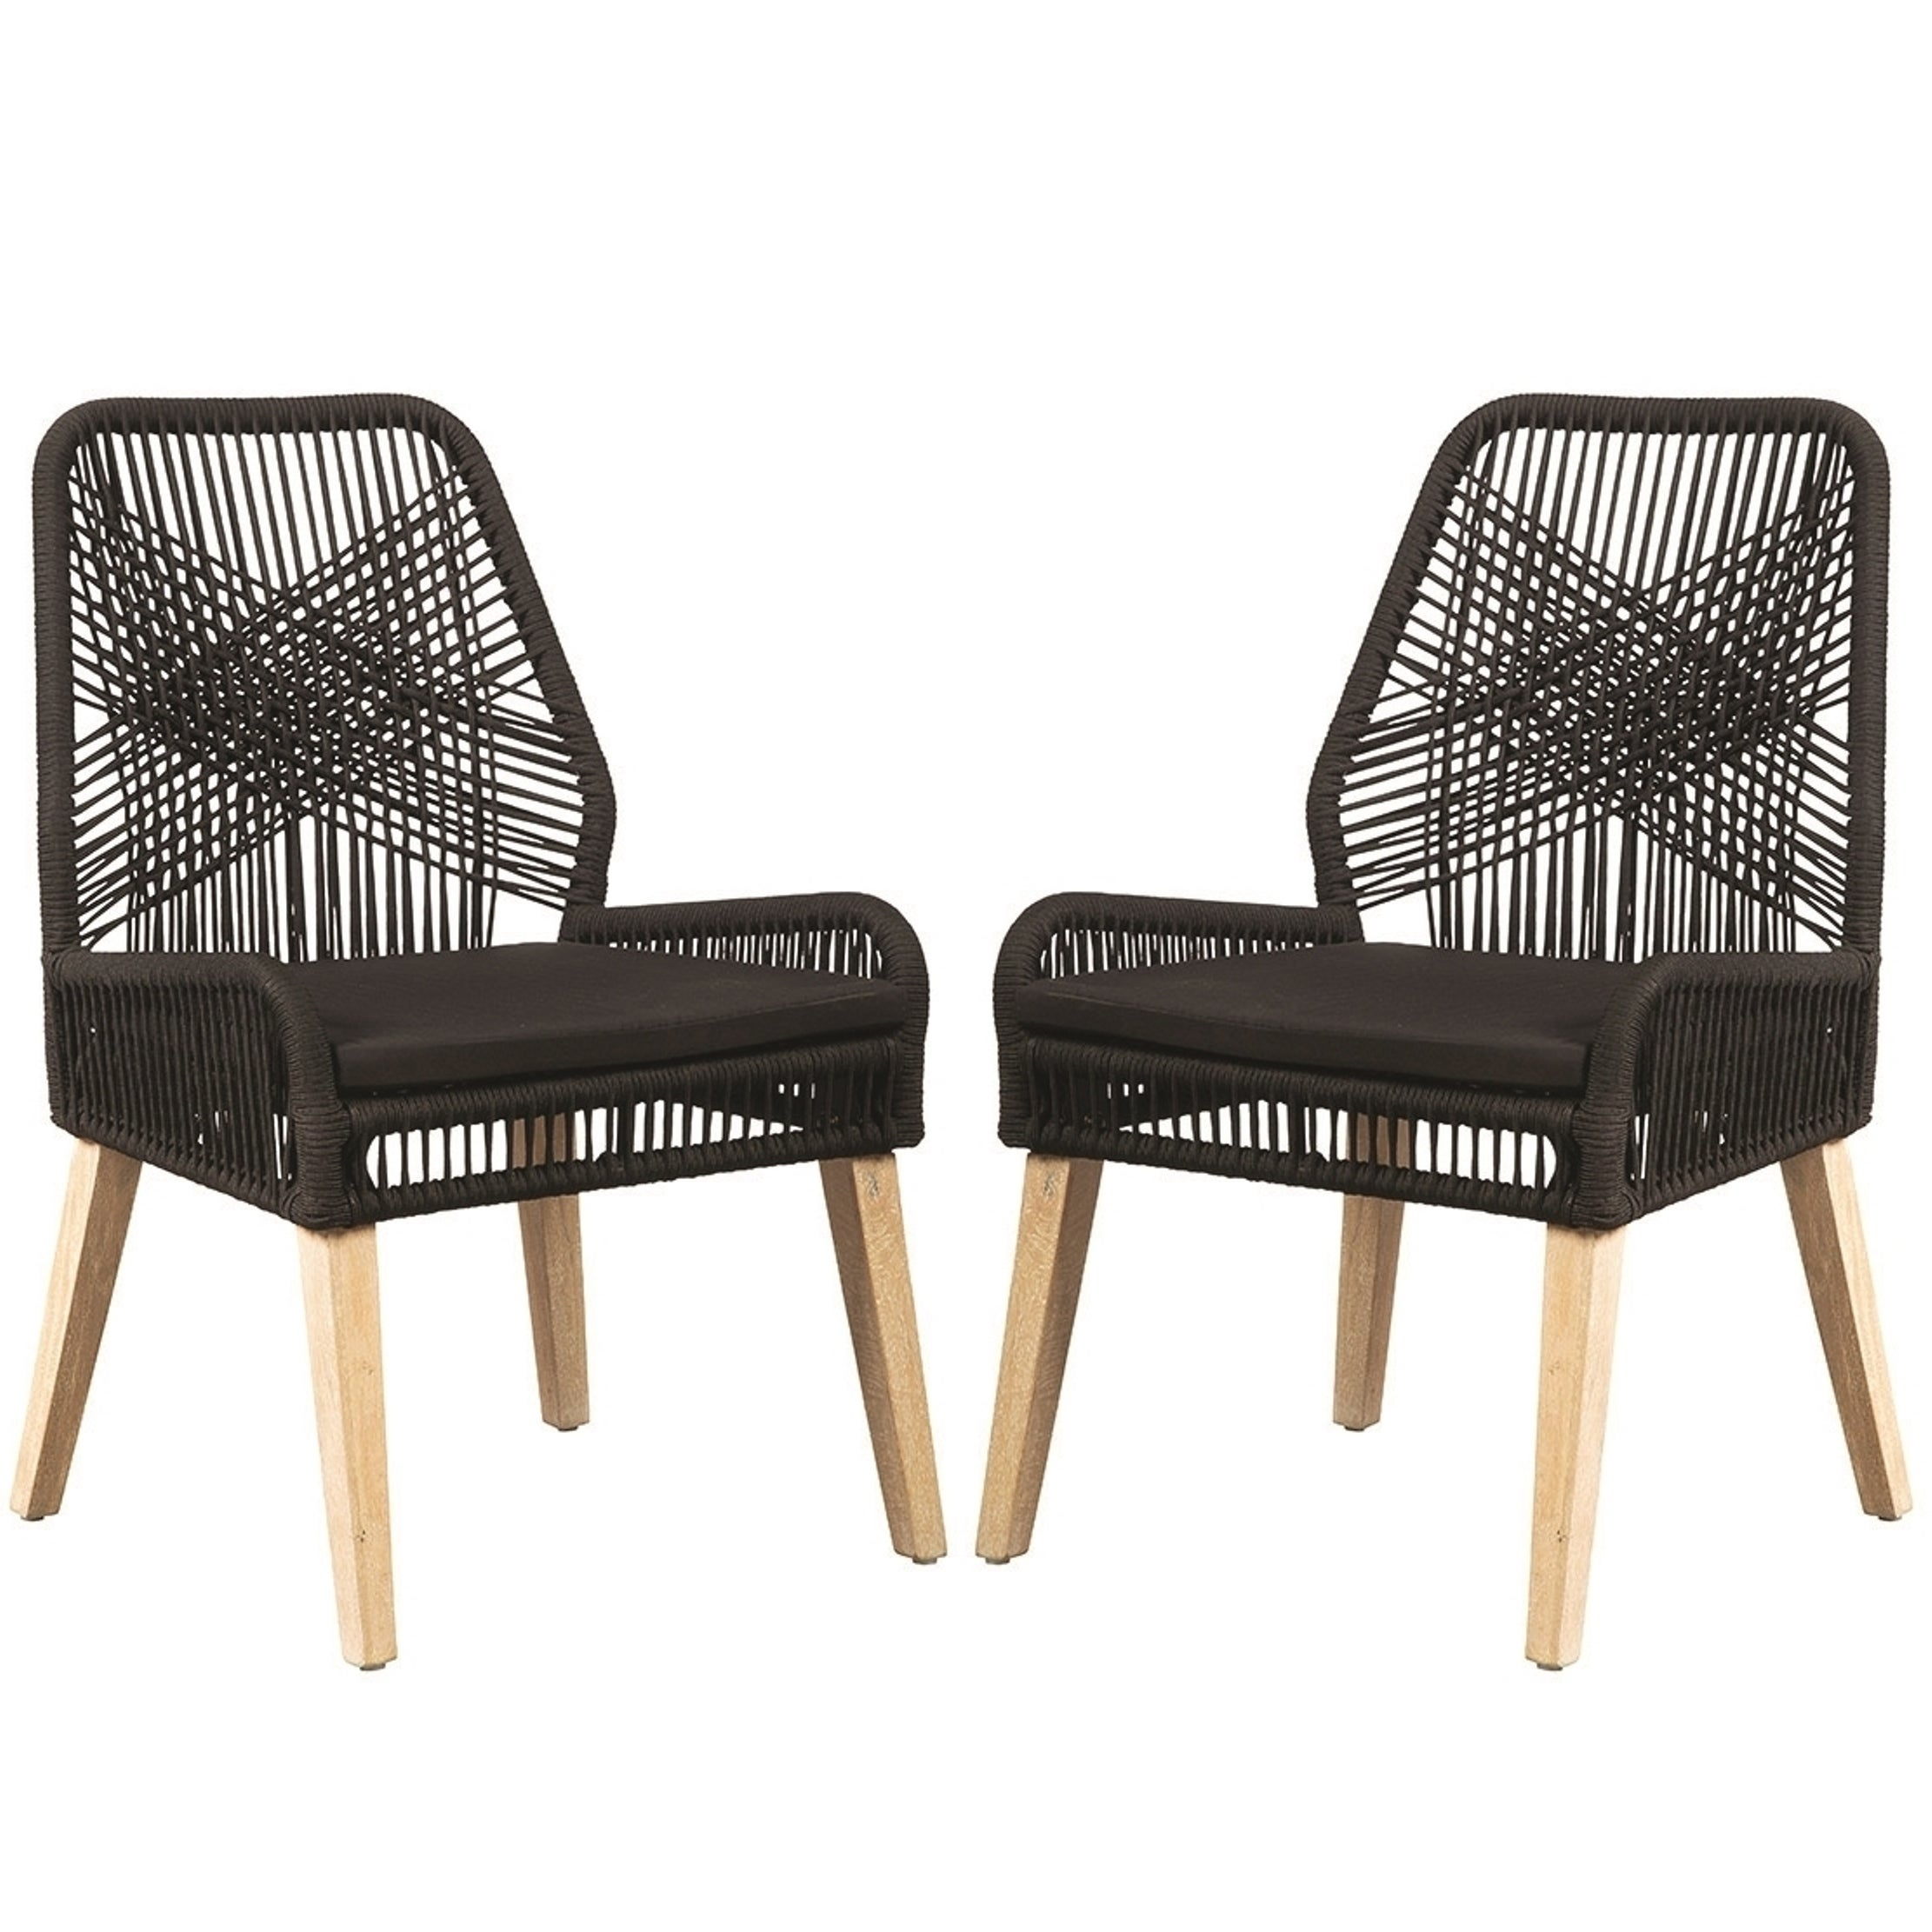 Nature Hand Crafted Design Black Woven Rope And Mango Wood Dining Chairs Set Of 2 Free Shipping Today 24250540